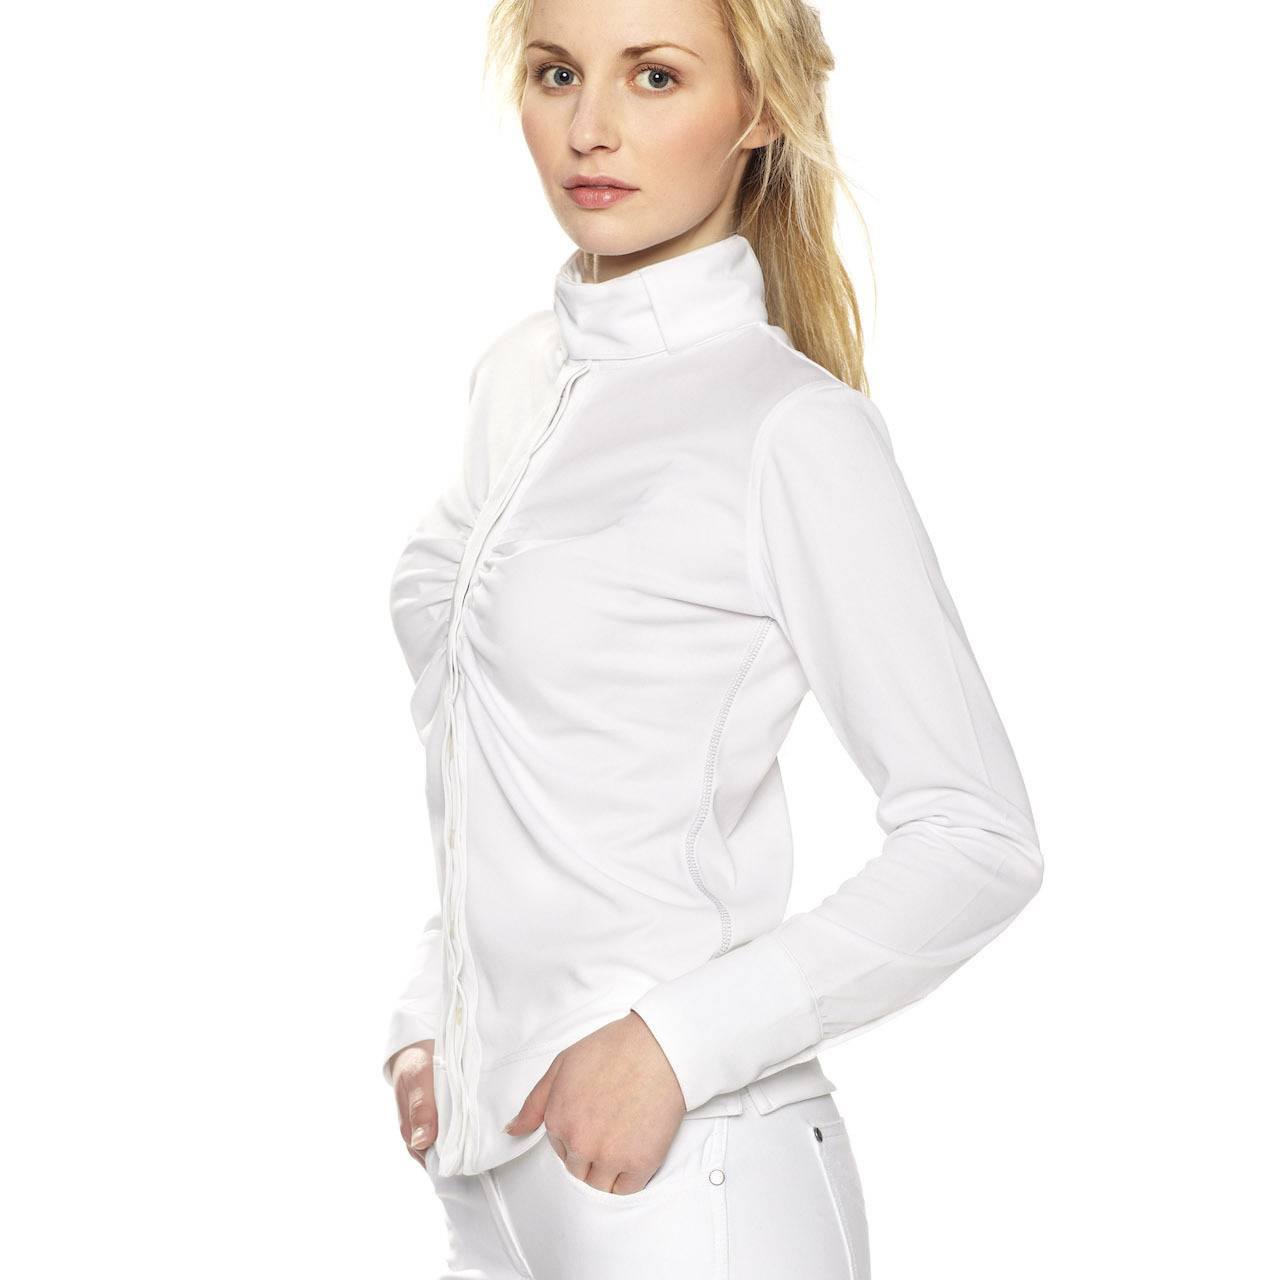 Gersemi Long Sleeve Button Competition Shirt - Ladies - White